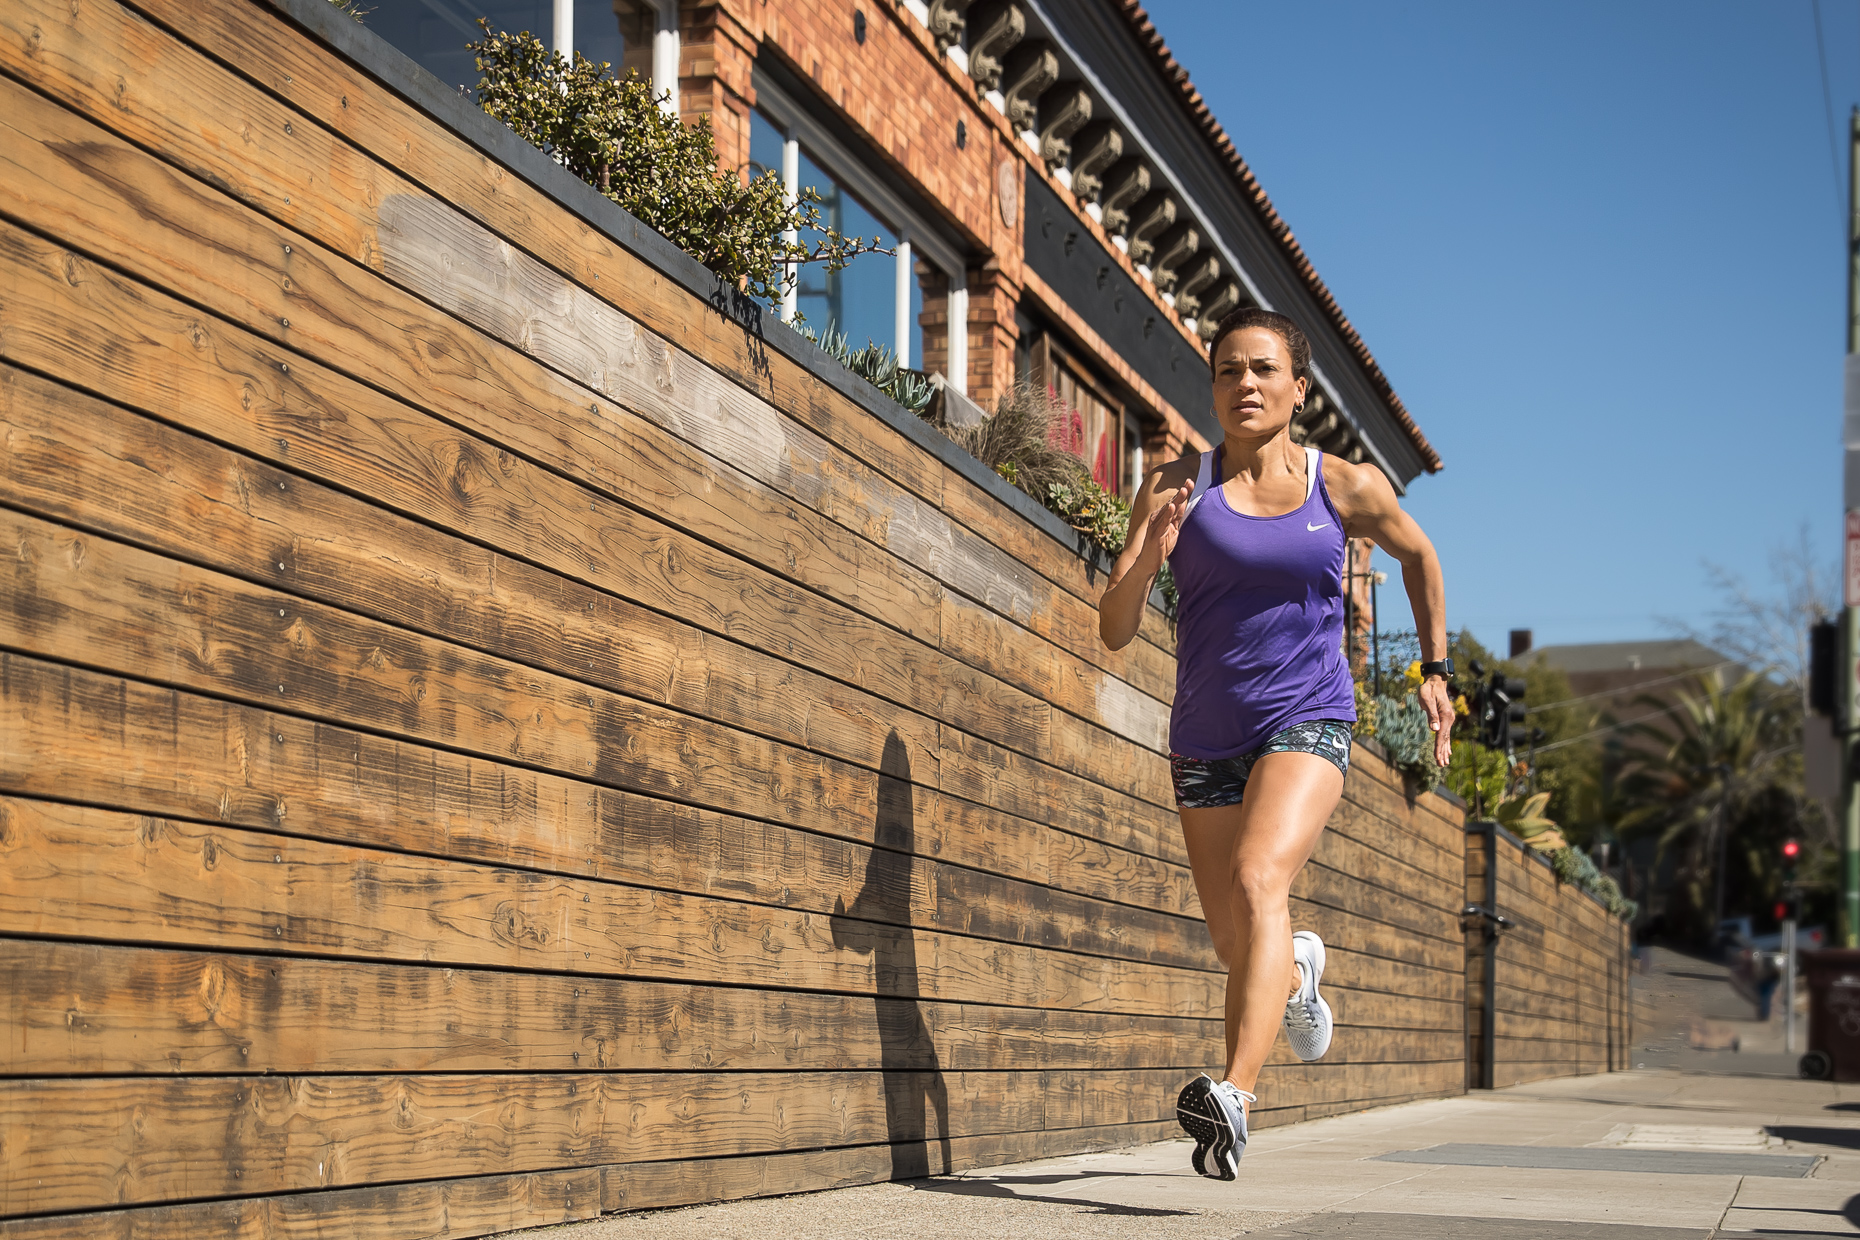 San-Francisco-LosAngeles-Sports-Fitness-Photographer-0191